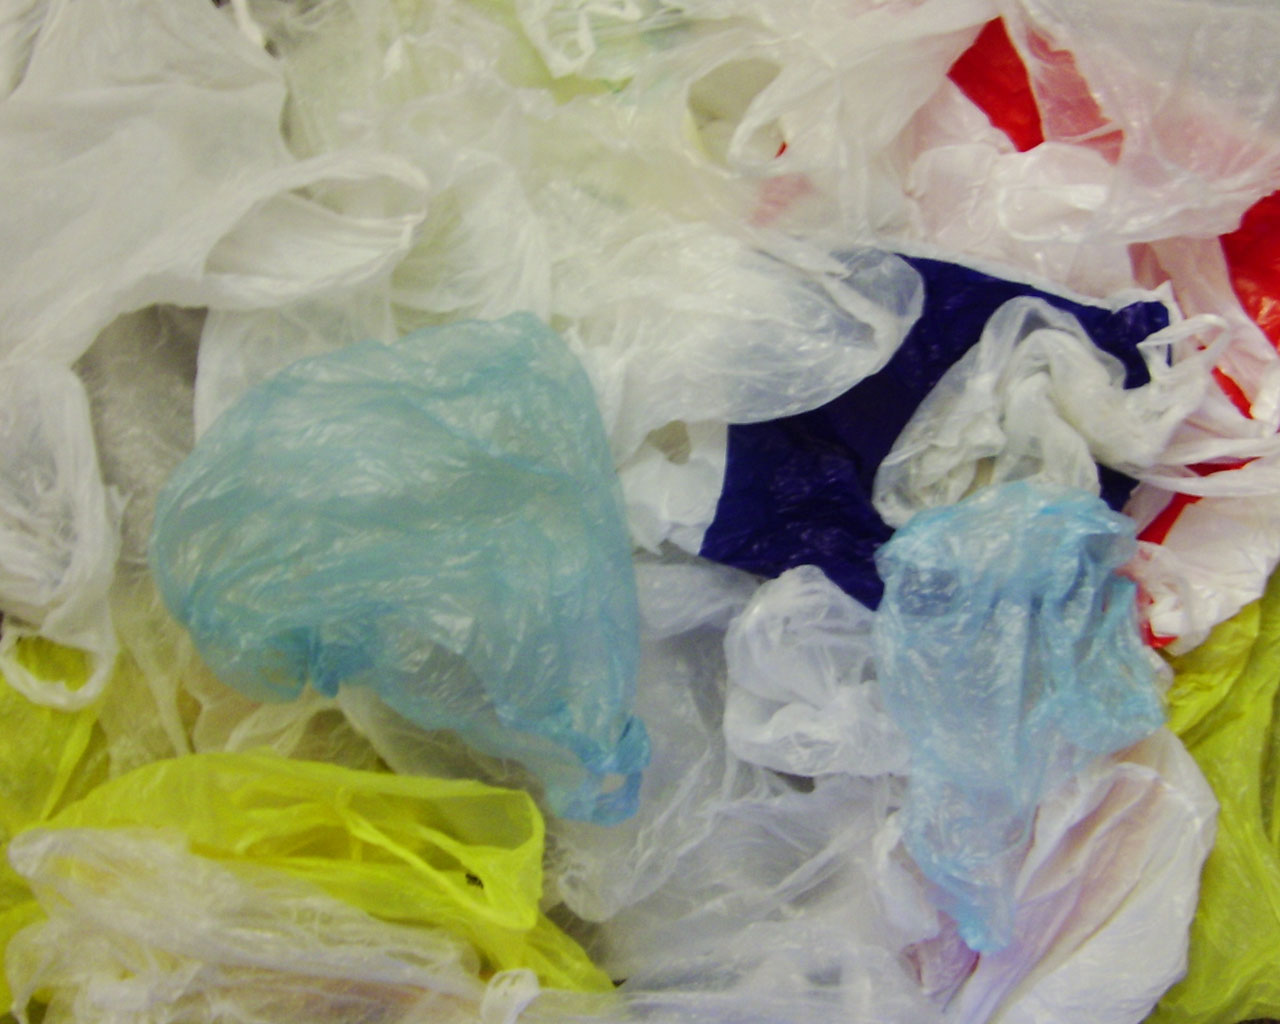 Lawmakers try to restrict cities from taxing, regulating plastic ...